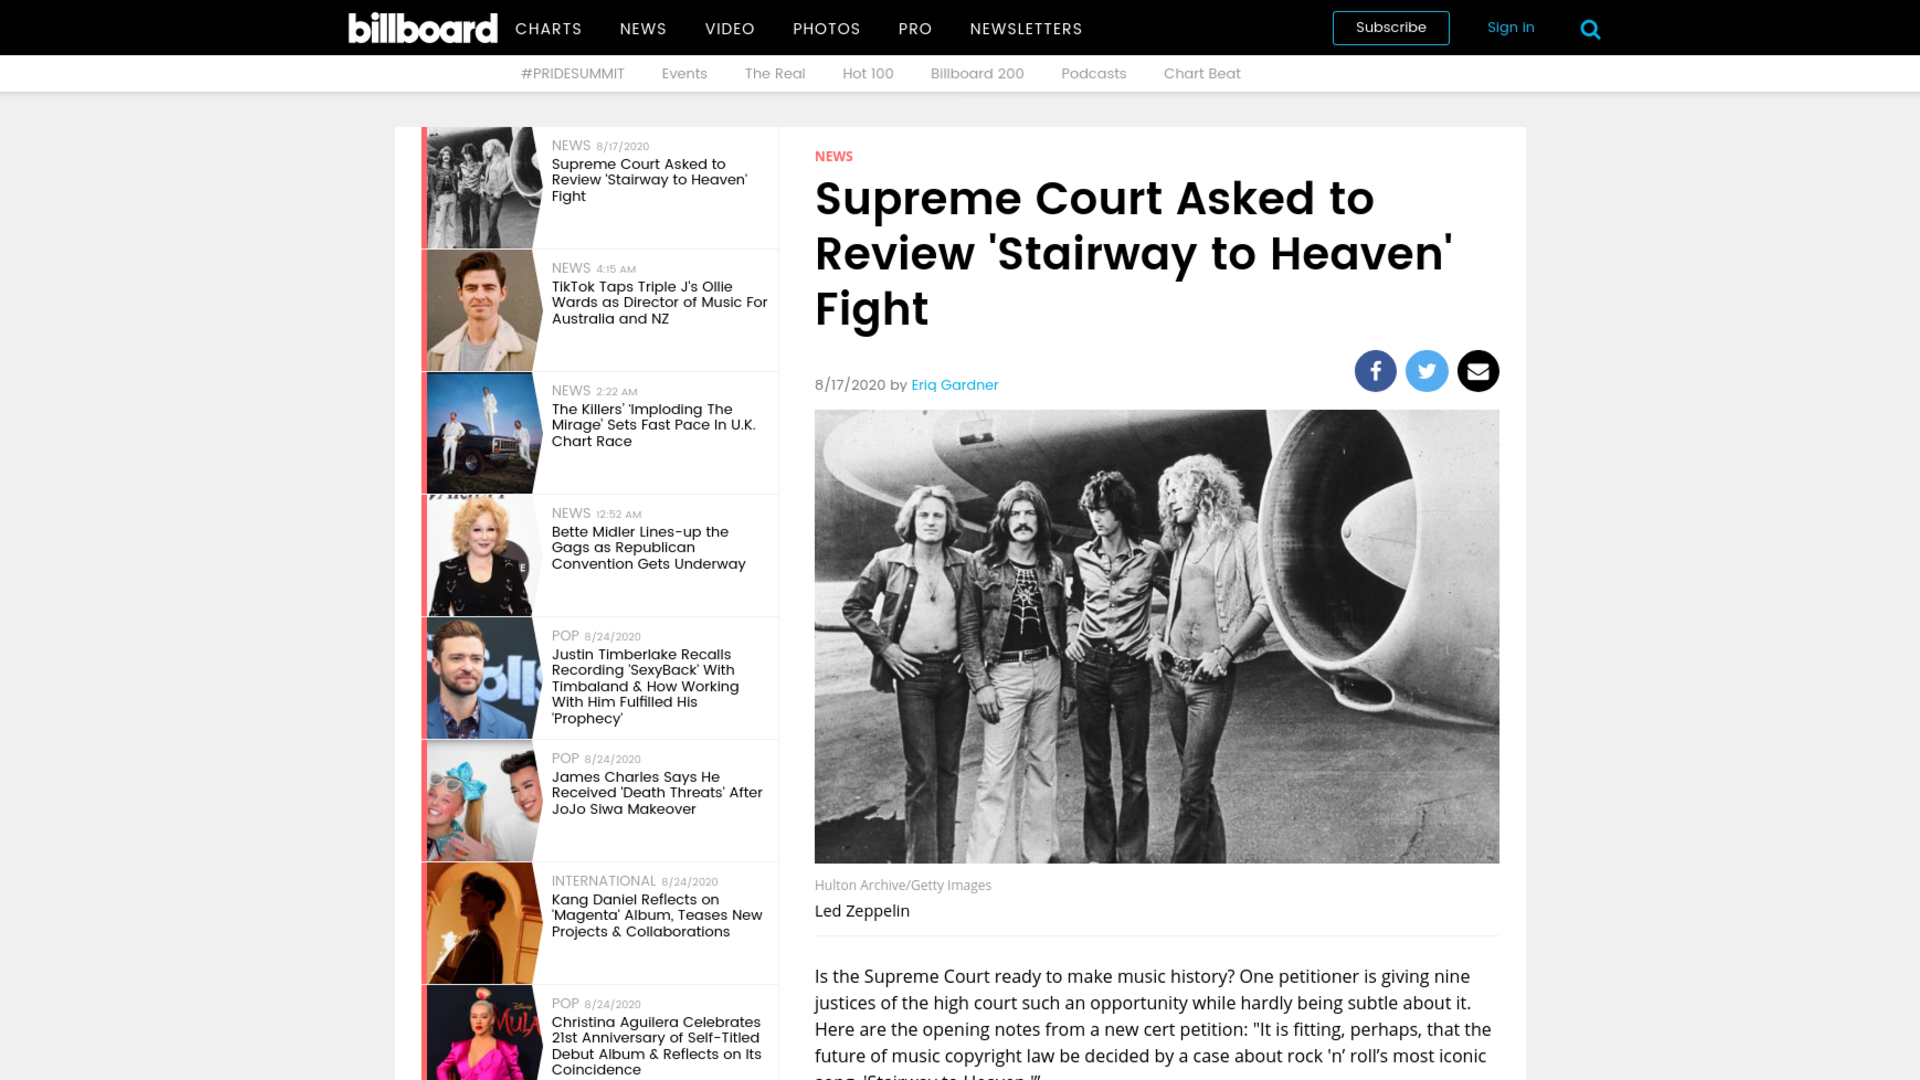 Fairness Rocks News Supreme Court Asked to Review 'Stairway to Heaven' Fight